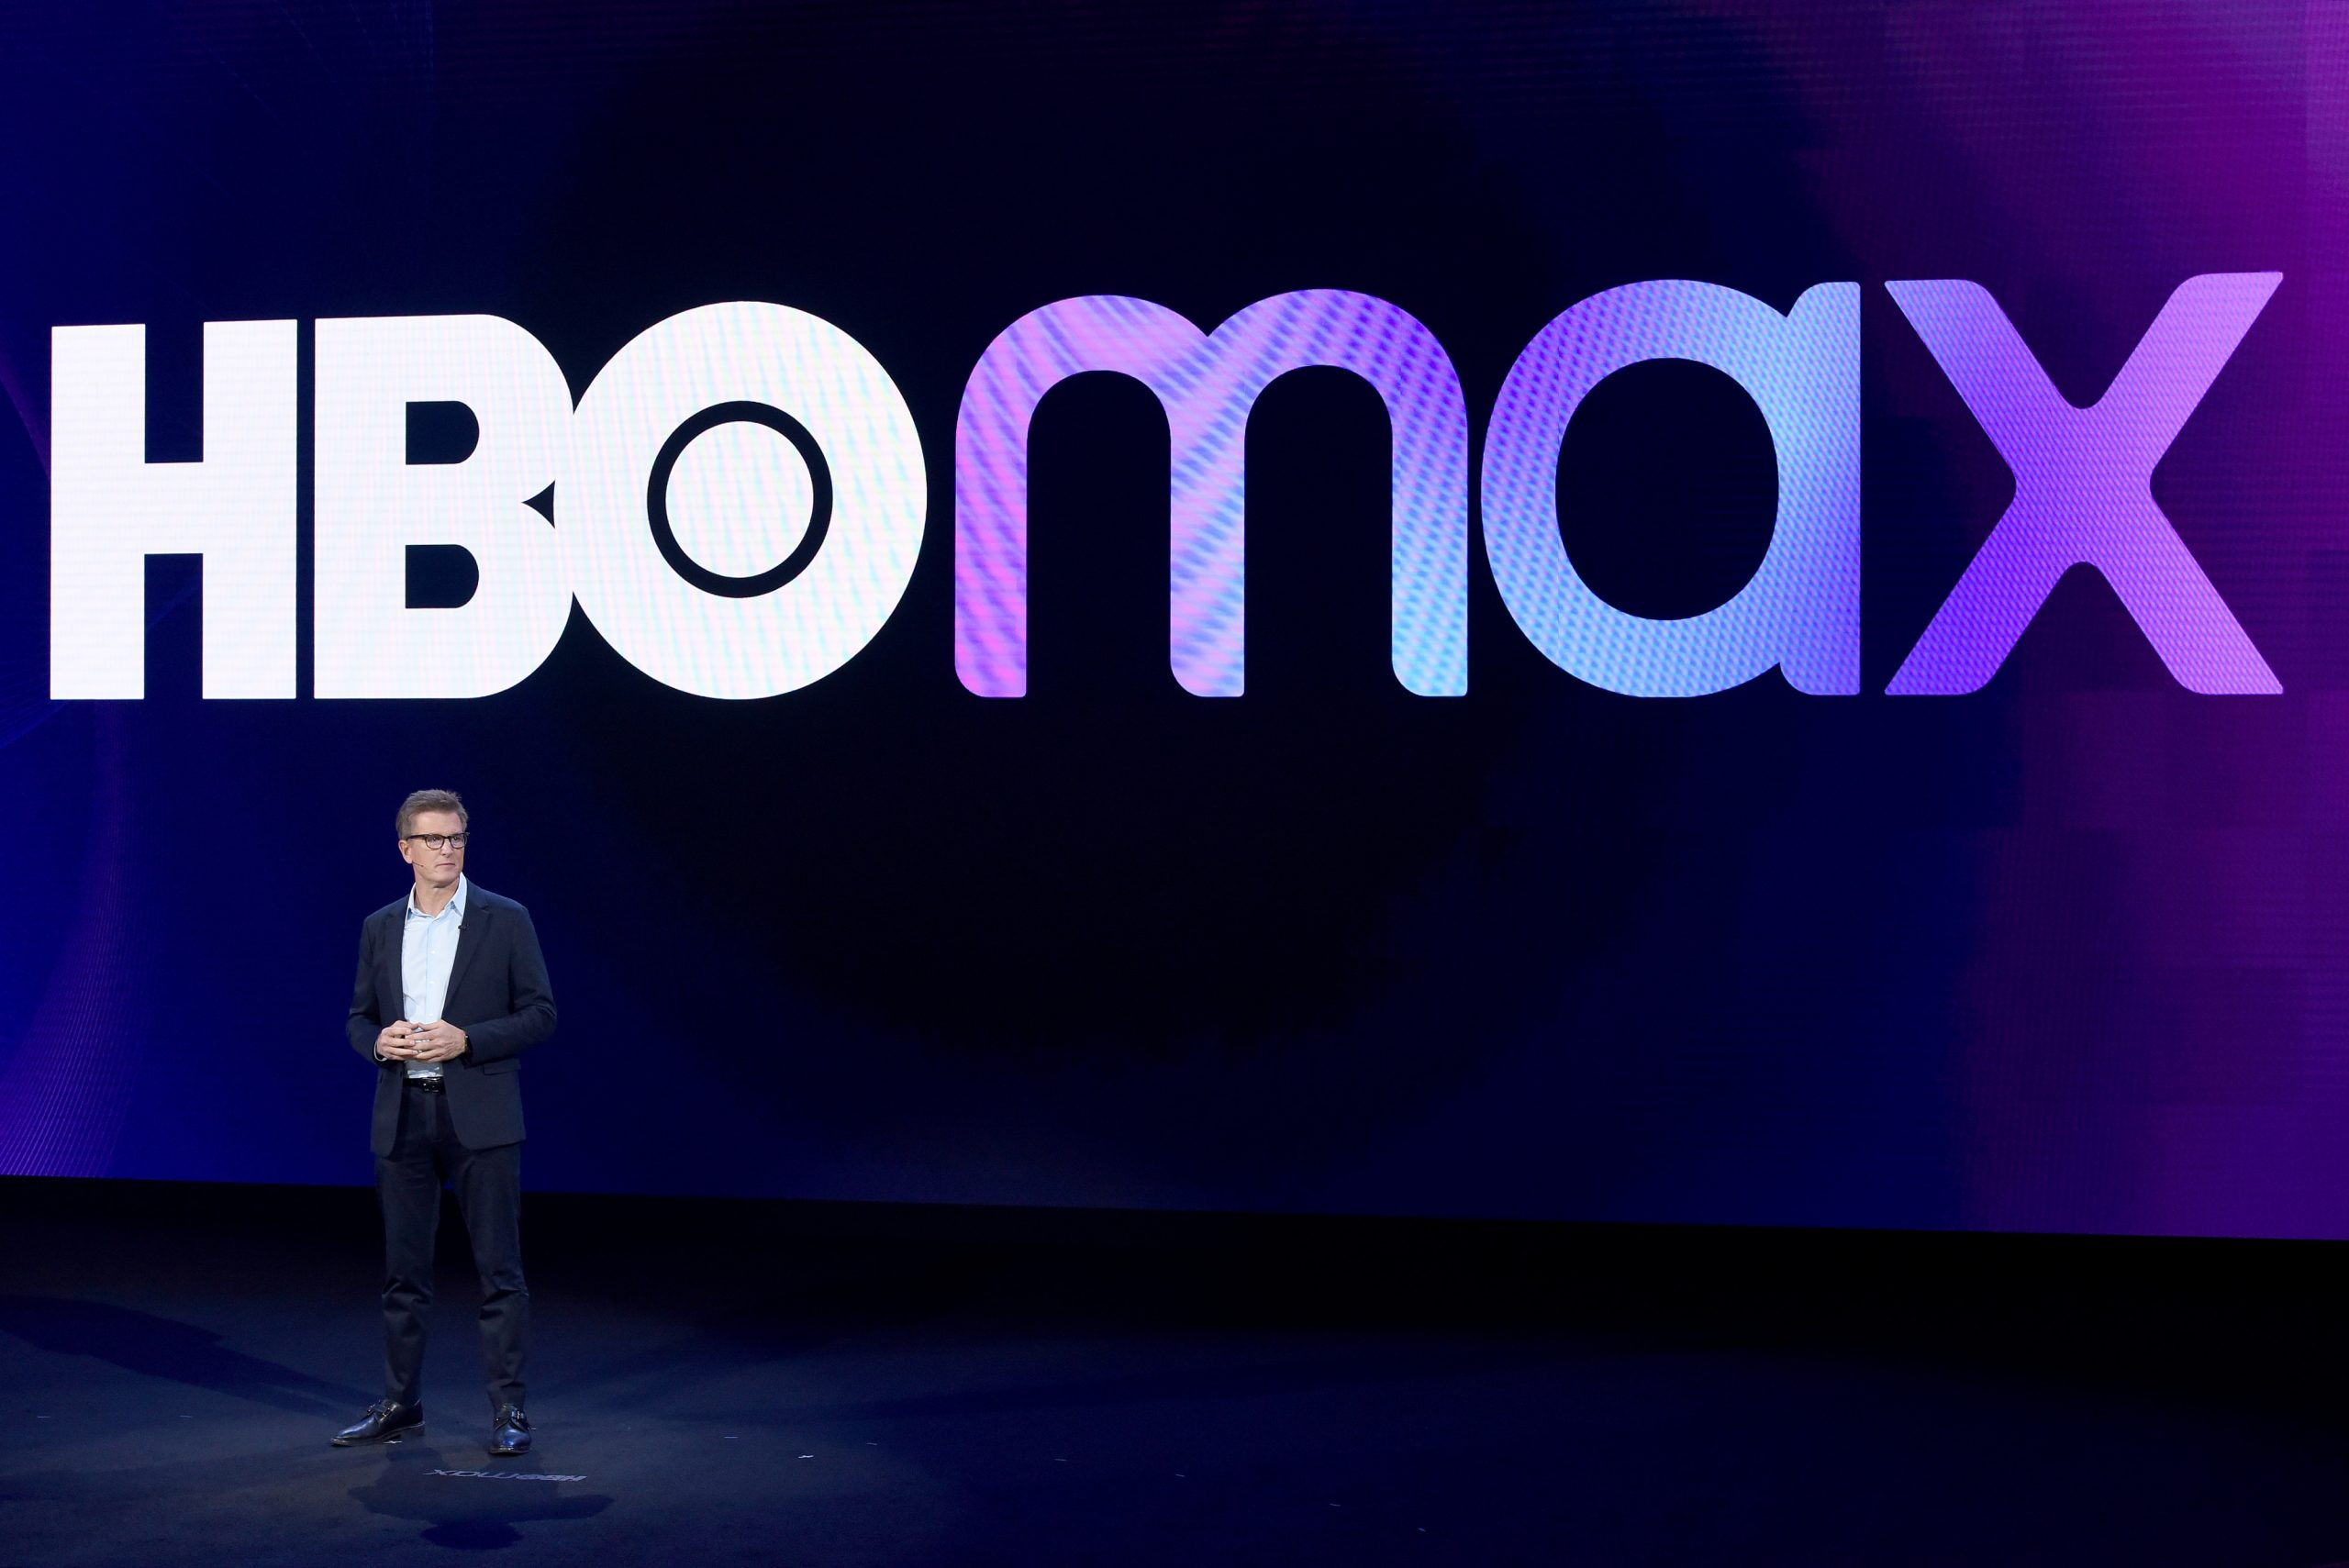 Charter is the first cable company with a deal for HBO Max | DeviceDaily.com